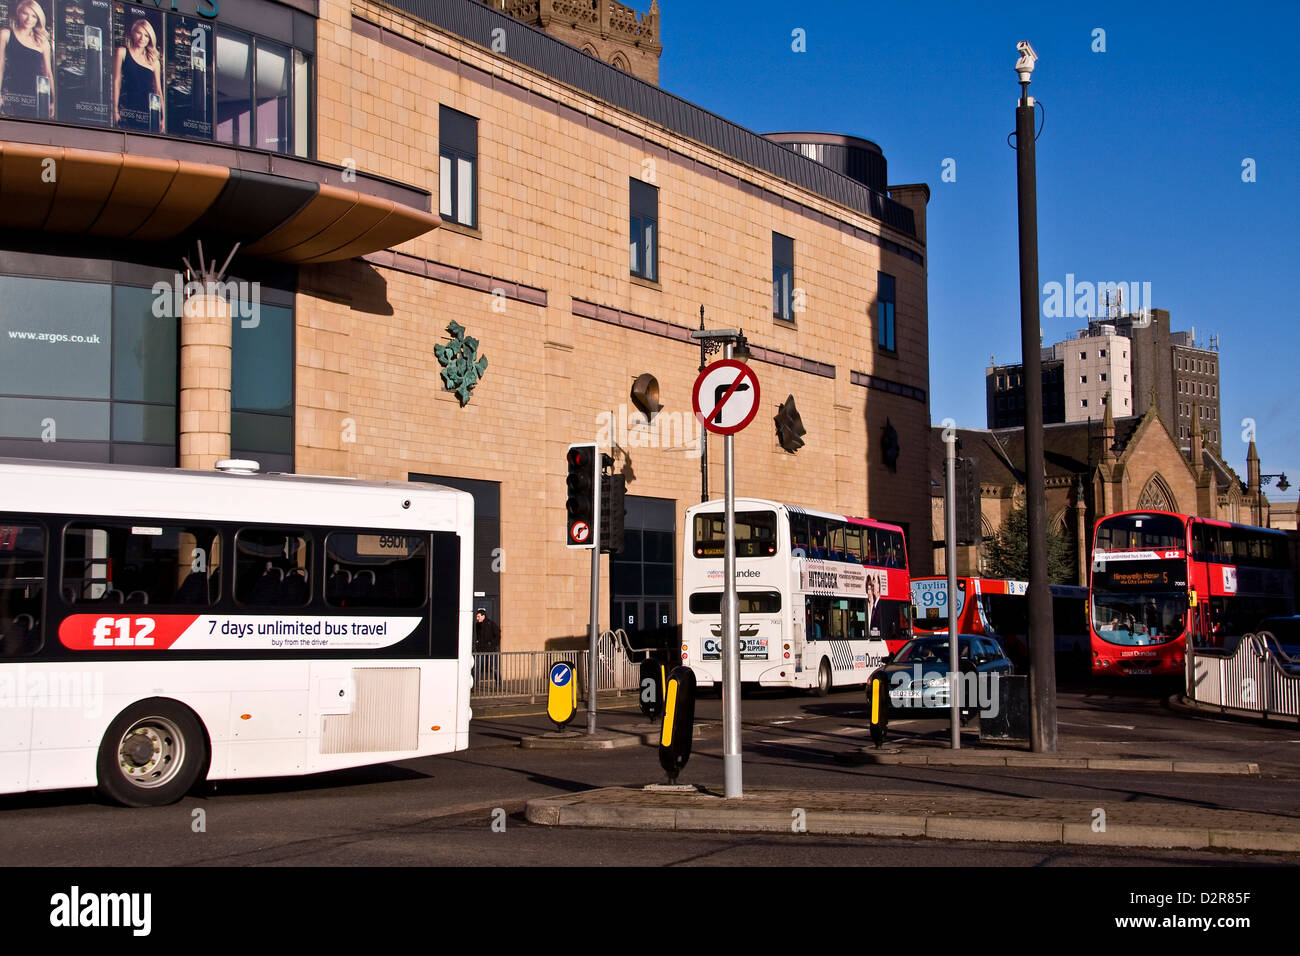 City Buses displaying 7day unlimited travel for £12 while travelling past the Overgate shopping centre in Dundee,UK - Stock Image